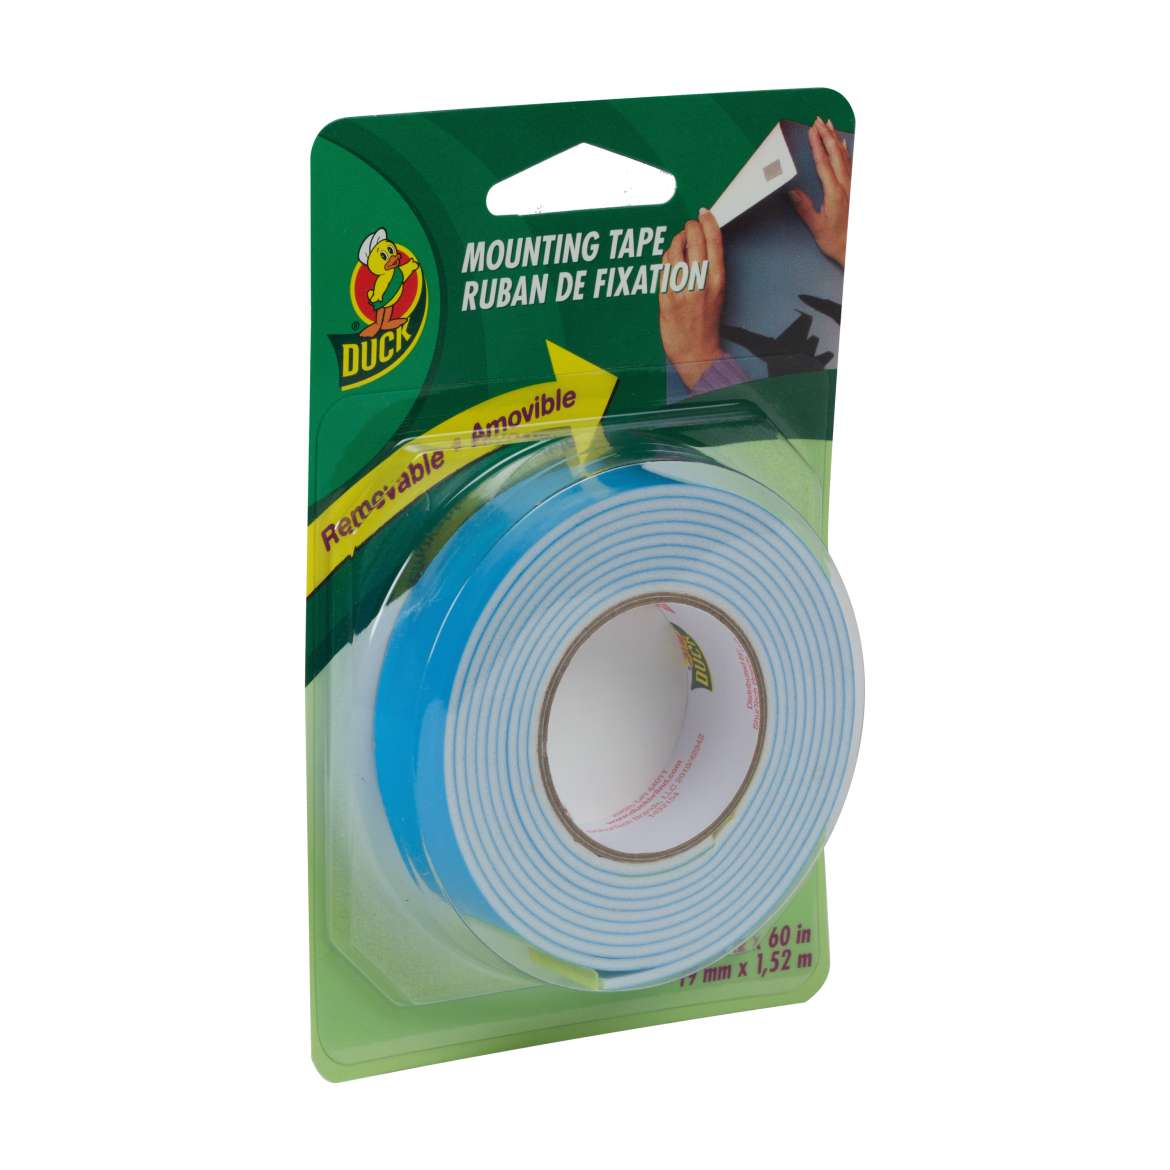 Duck Brand Removable Mounting Tape - White, .75 in. x 60 in.